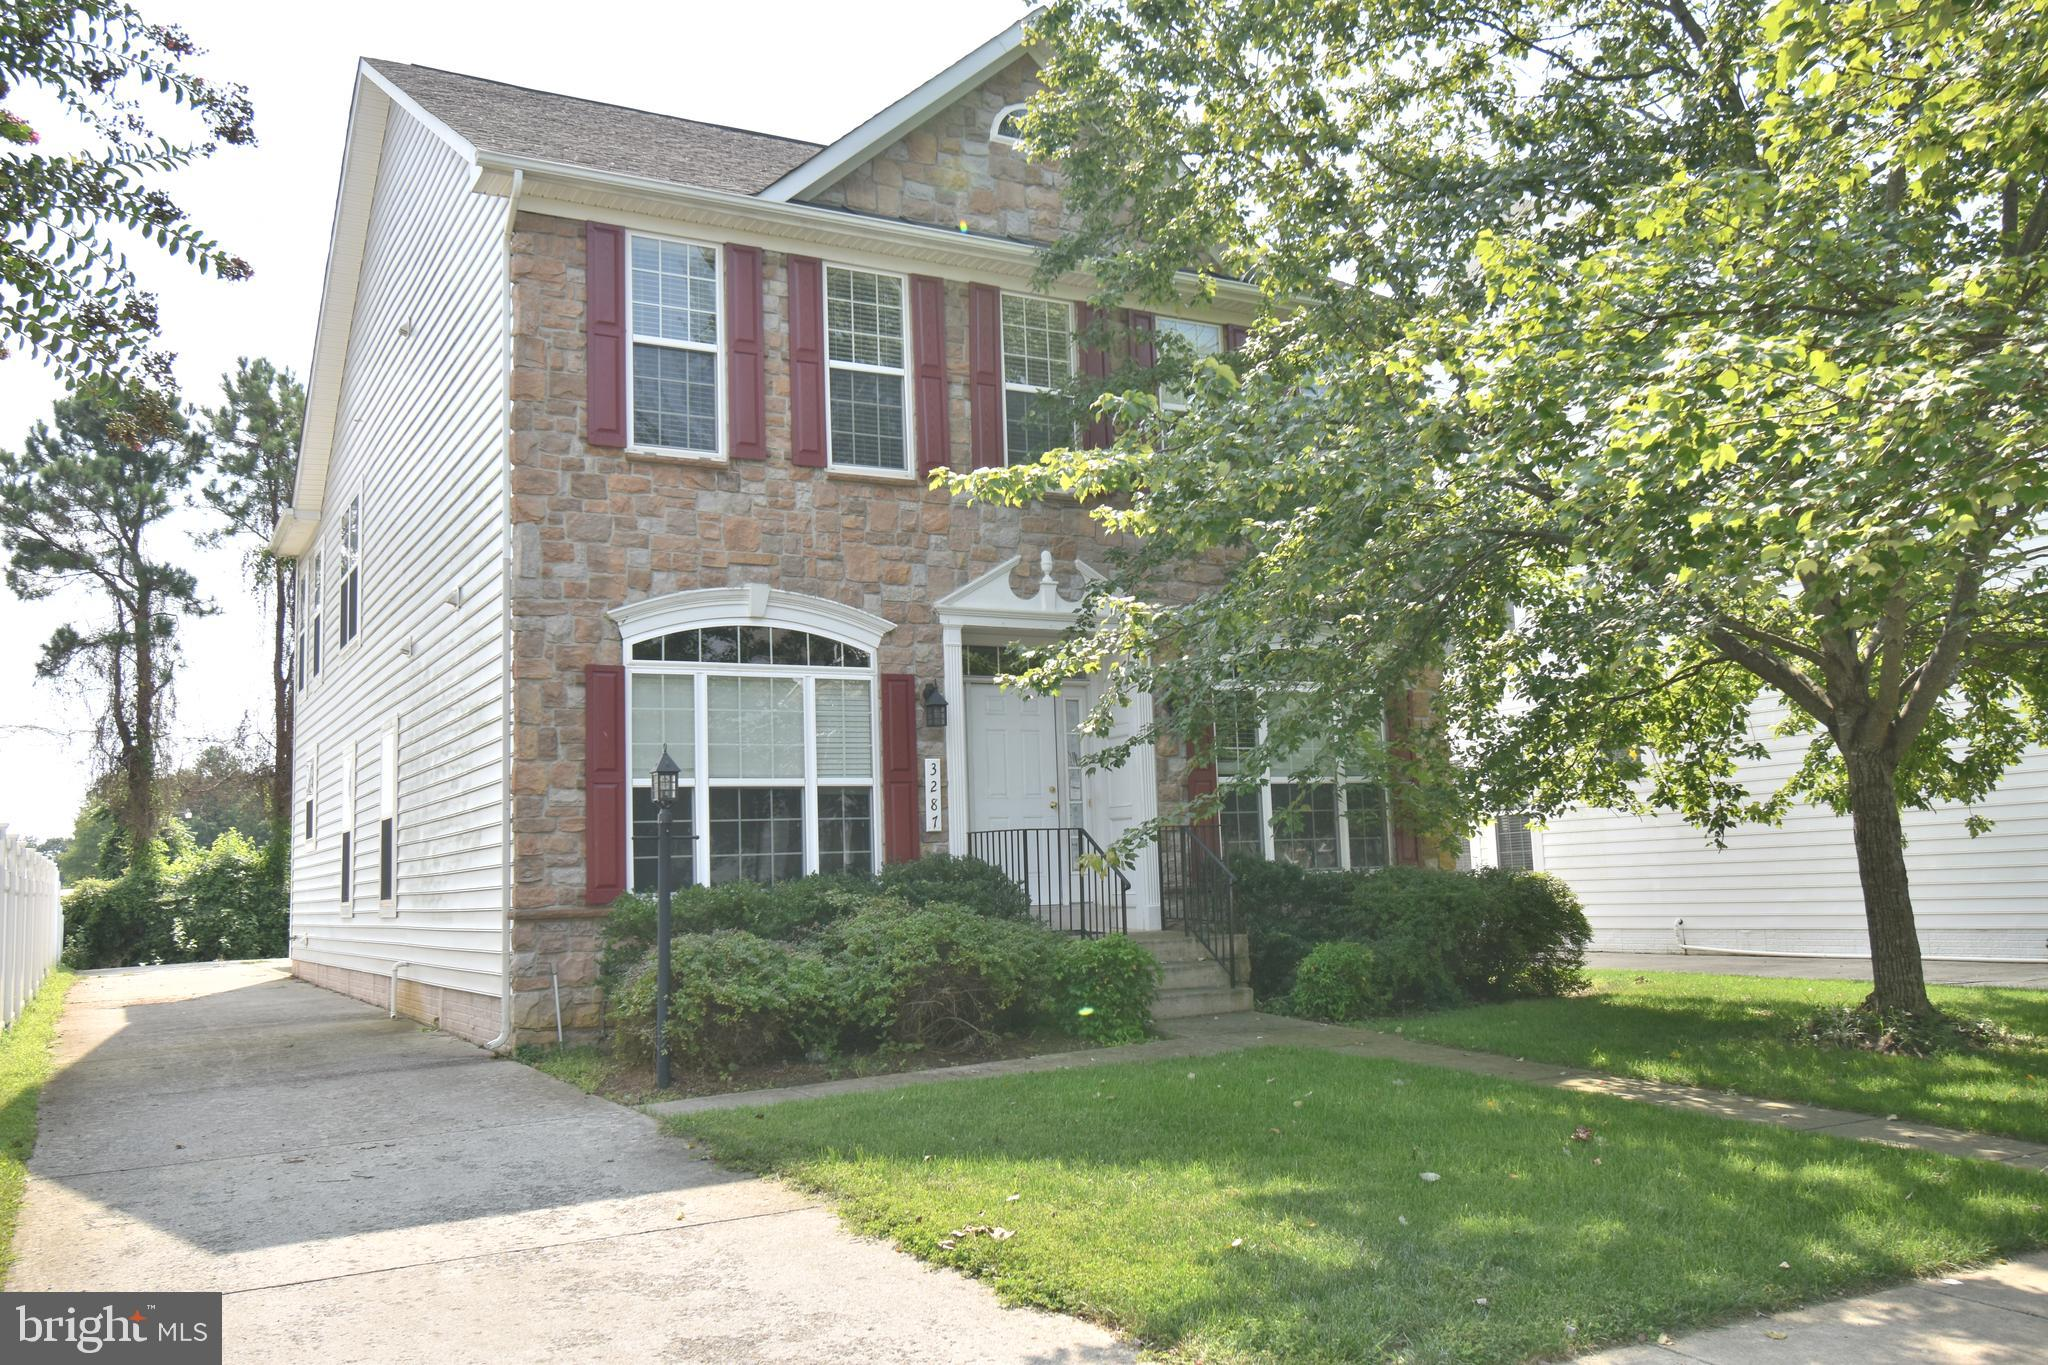 Over 5000 square feet of living space. Main level bedroom with full bathroom, Gourmet kitchen with open 2 story family room. Upstairs hallway over looks family room with 2 story stone fireplace. Bedroom Level laundry room. Basement with full bathroom.